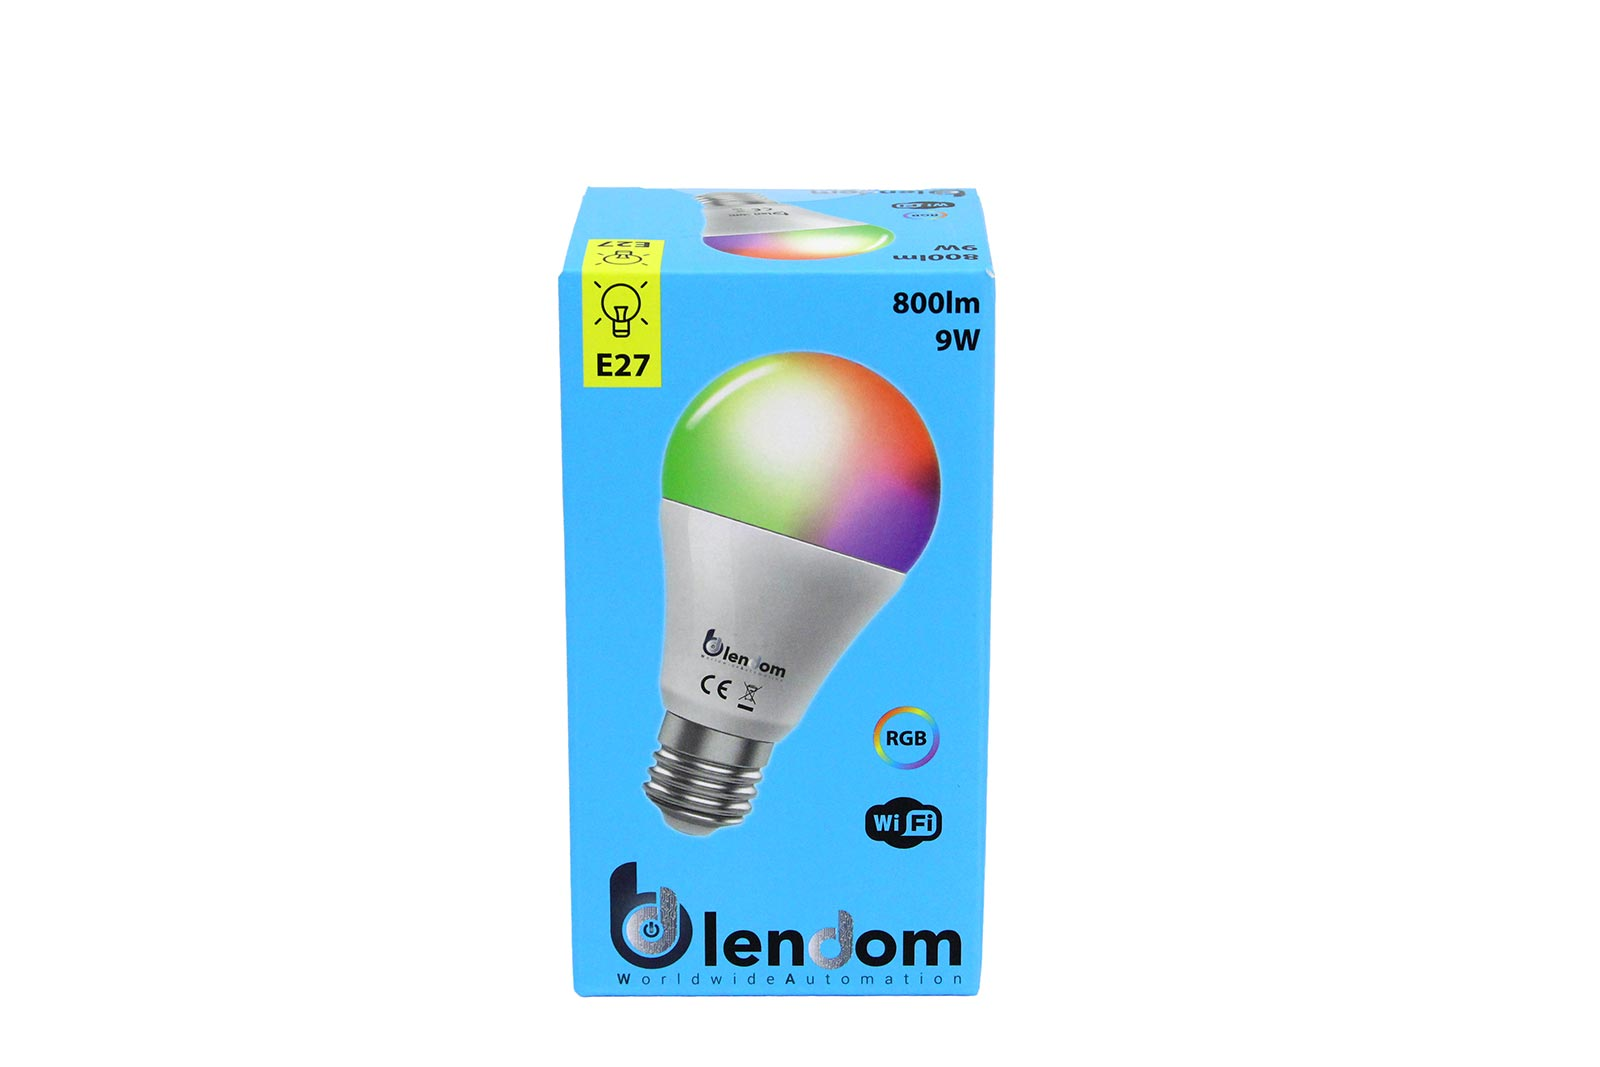 Lampadina smart e27 blendom for Lampadina e27